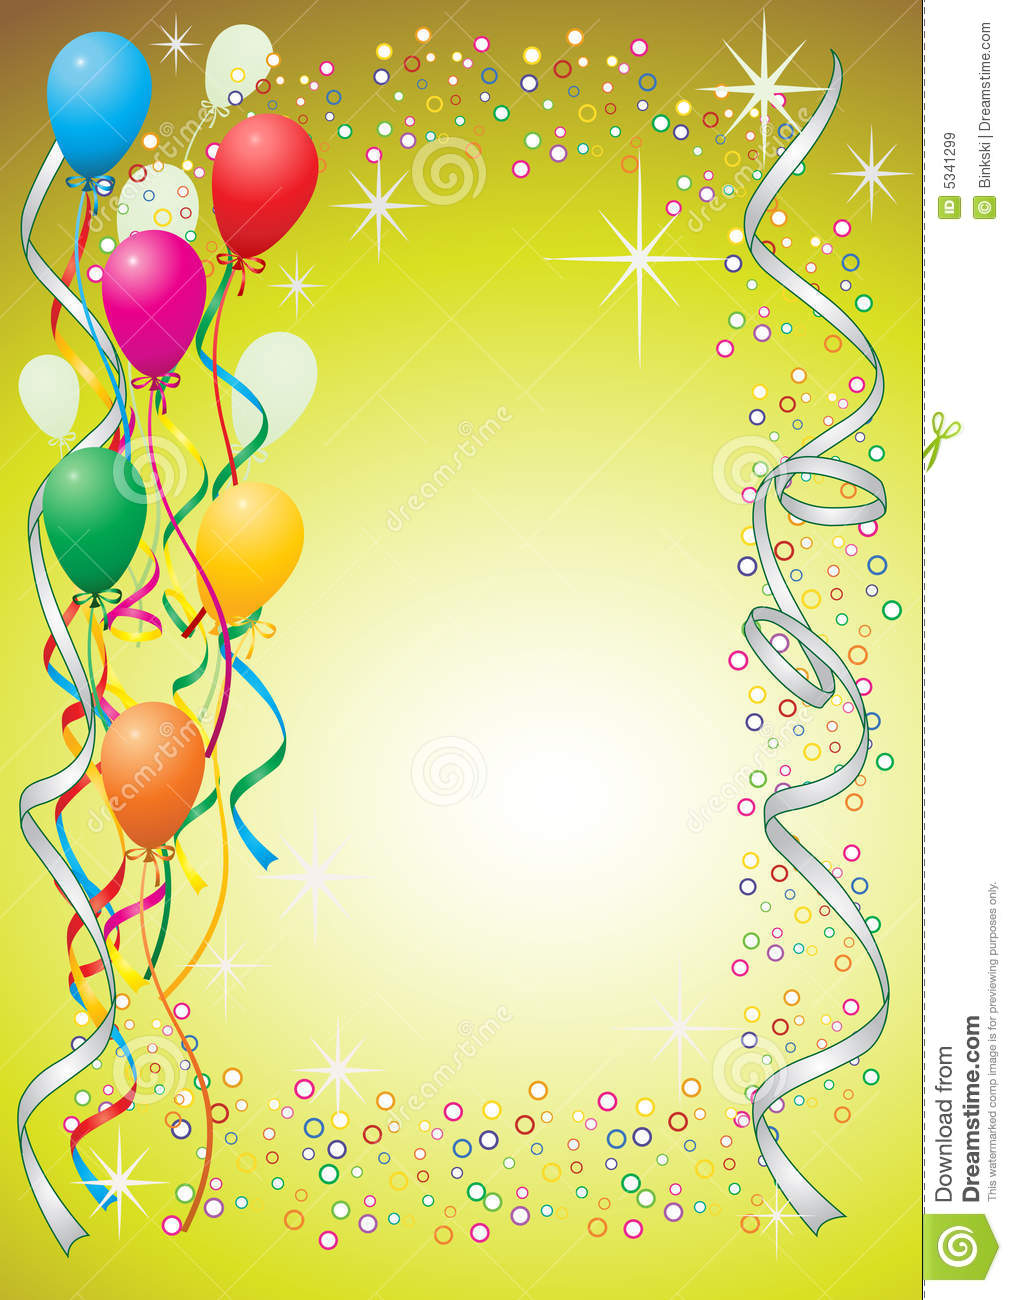 Balloon Background Royalty Free Stock Images - Image: 5341299